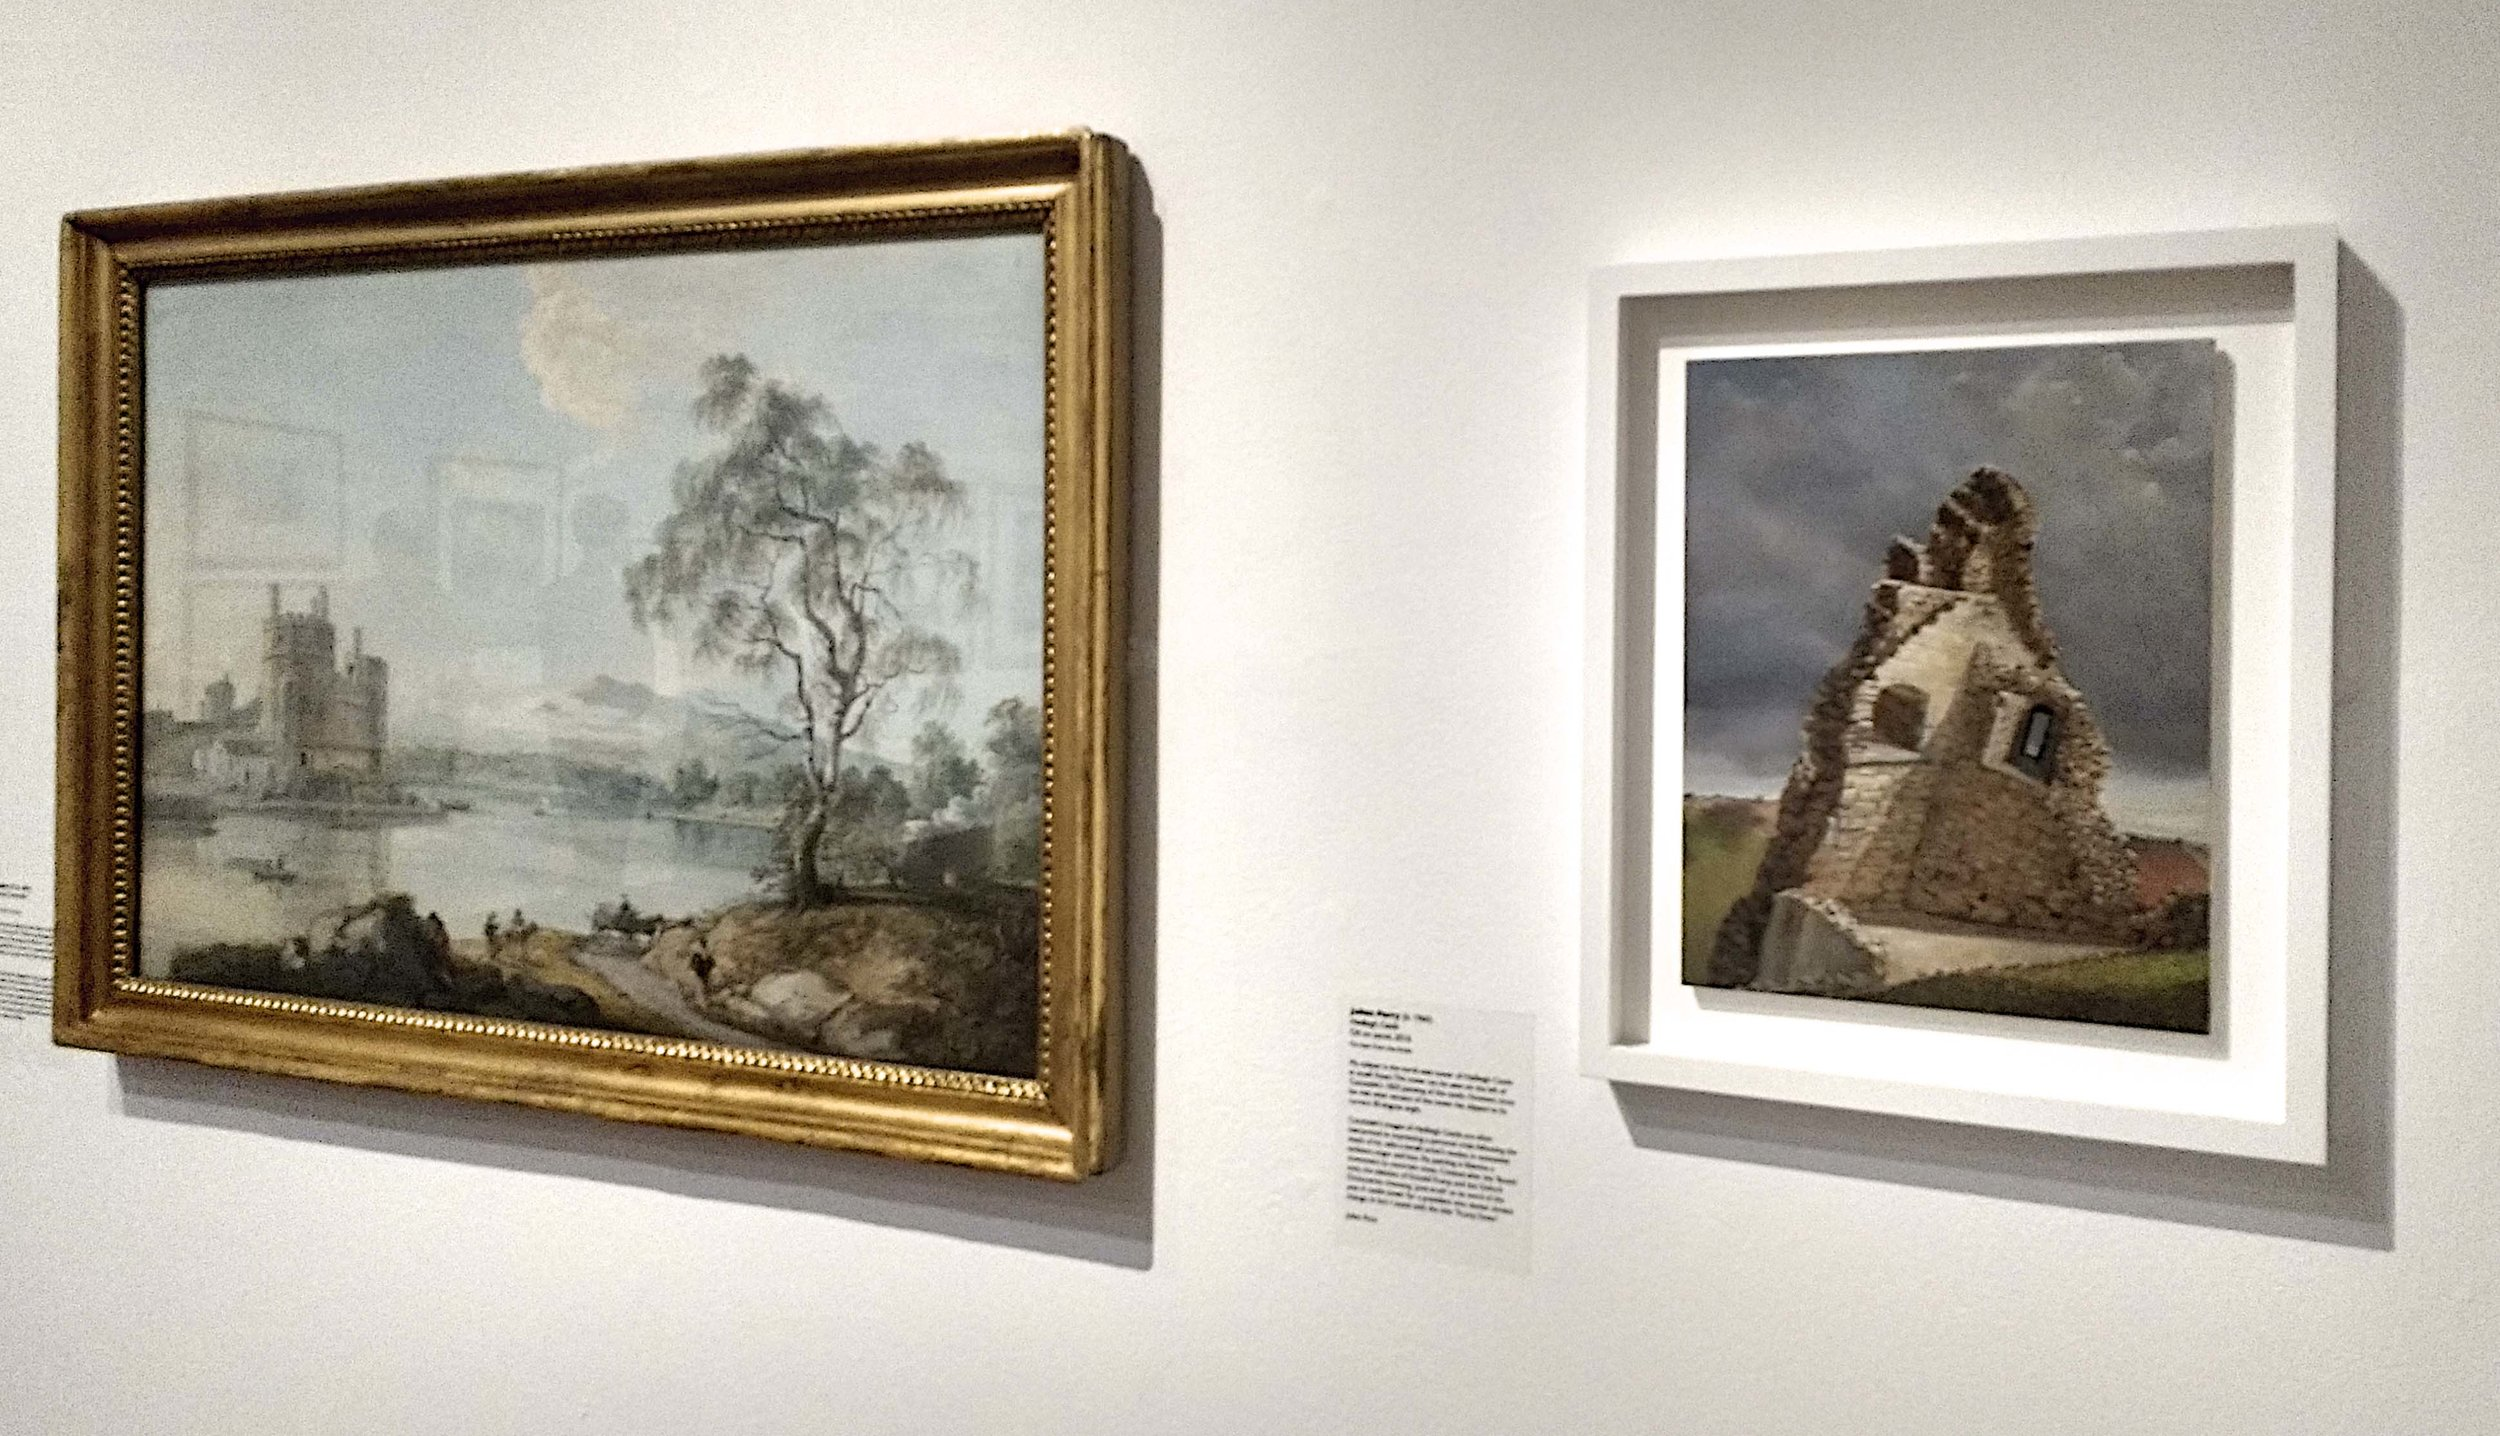 Installation at Southampton Paul Sandby on the left Juian Perry on the right